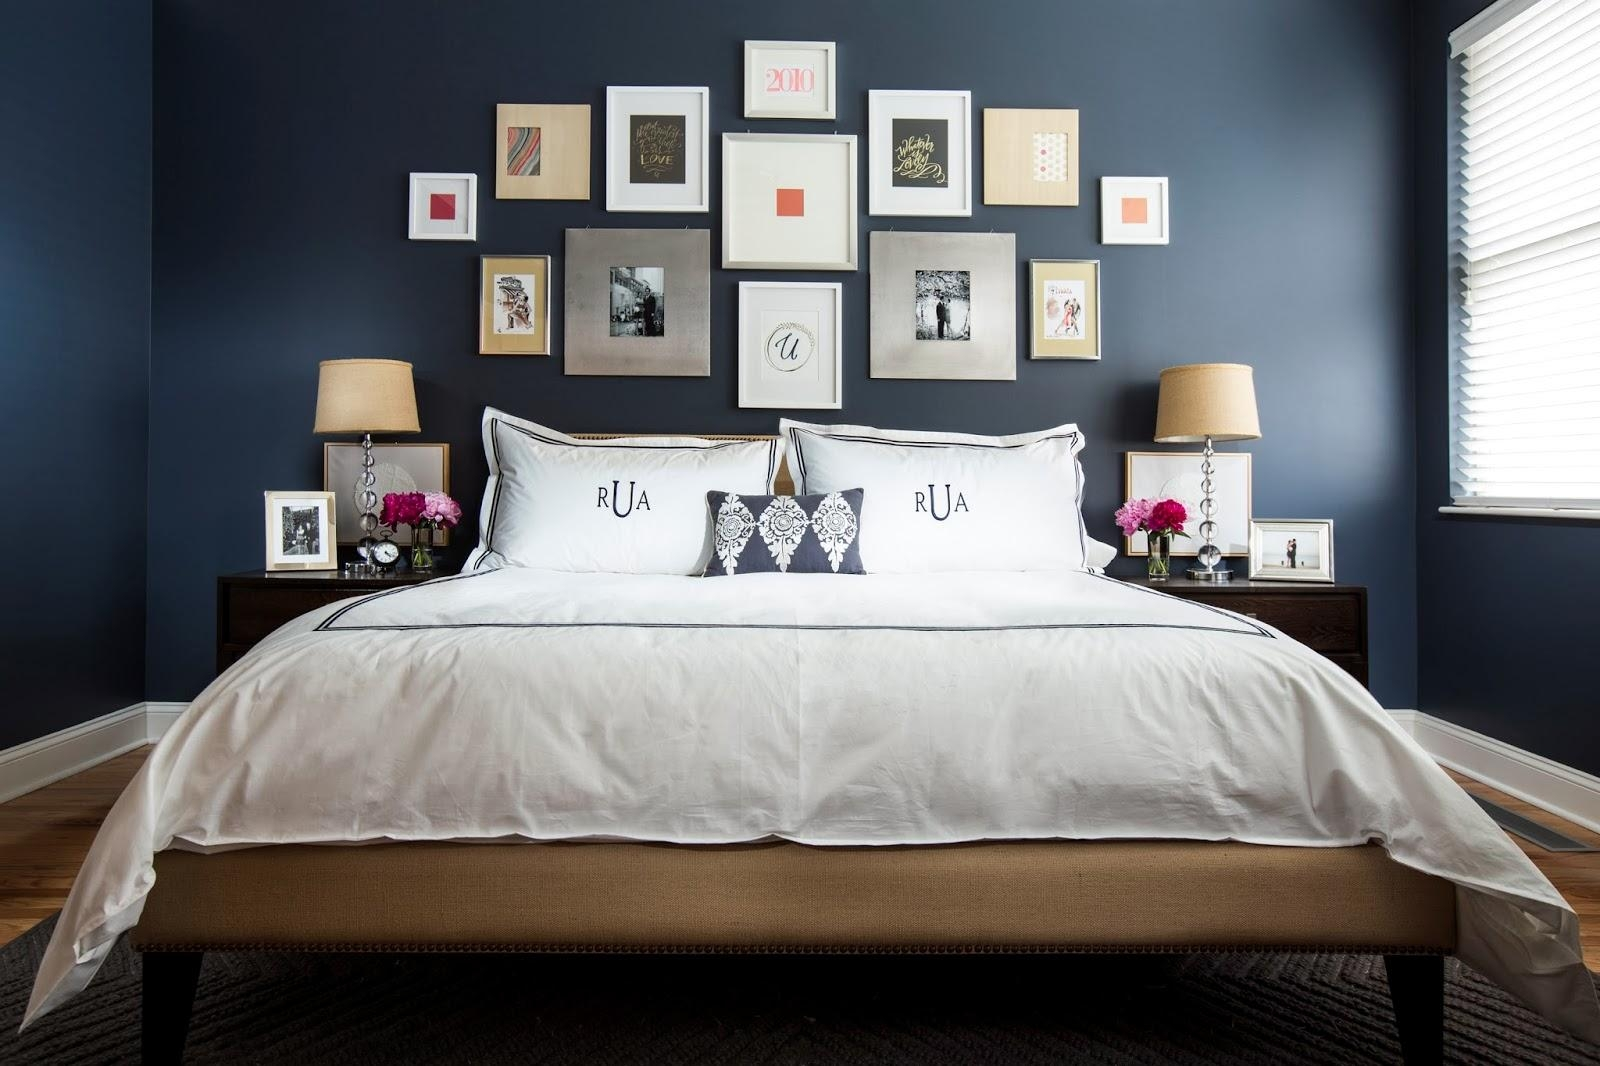 Full Of Framed Awesome Bedroom Design With Wall Art Over Bed Feat For Wall Art Over Bed (Image 13 of 20)